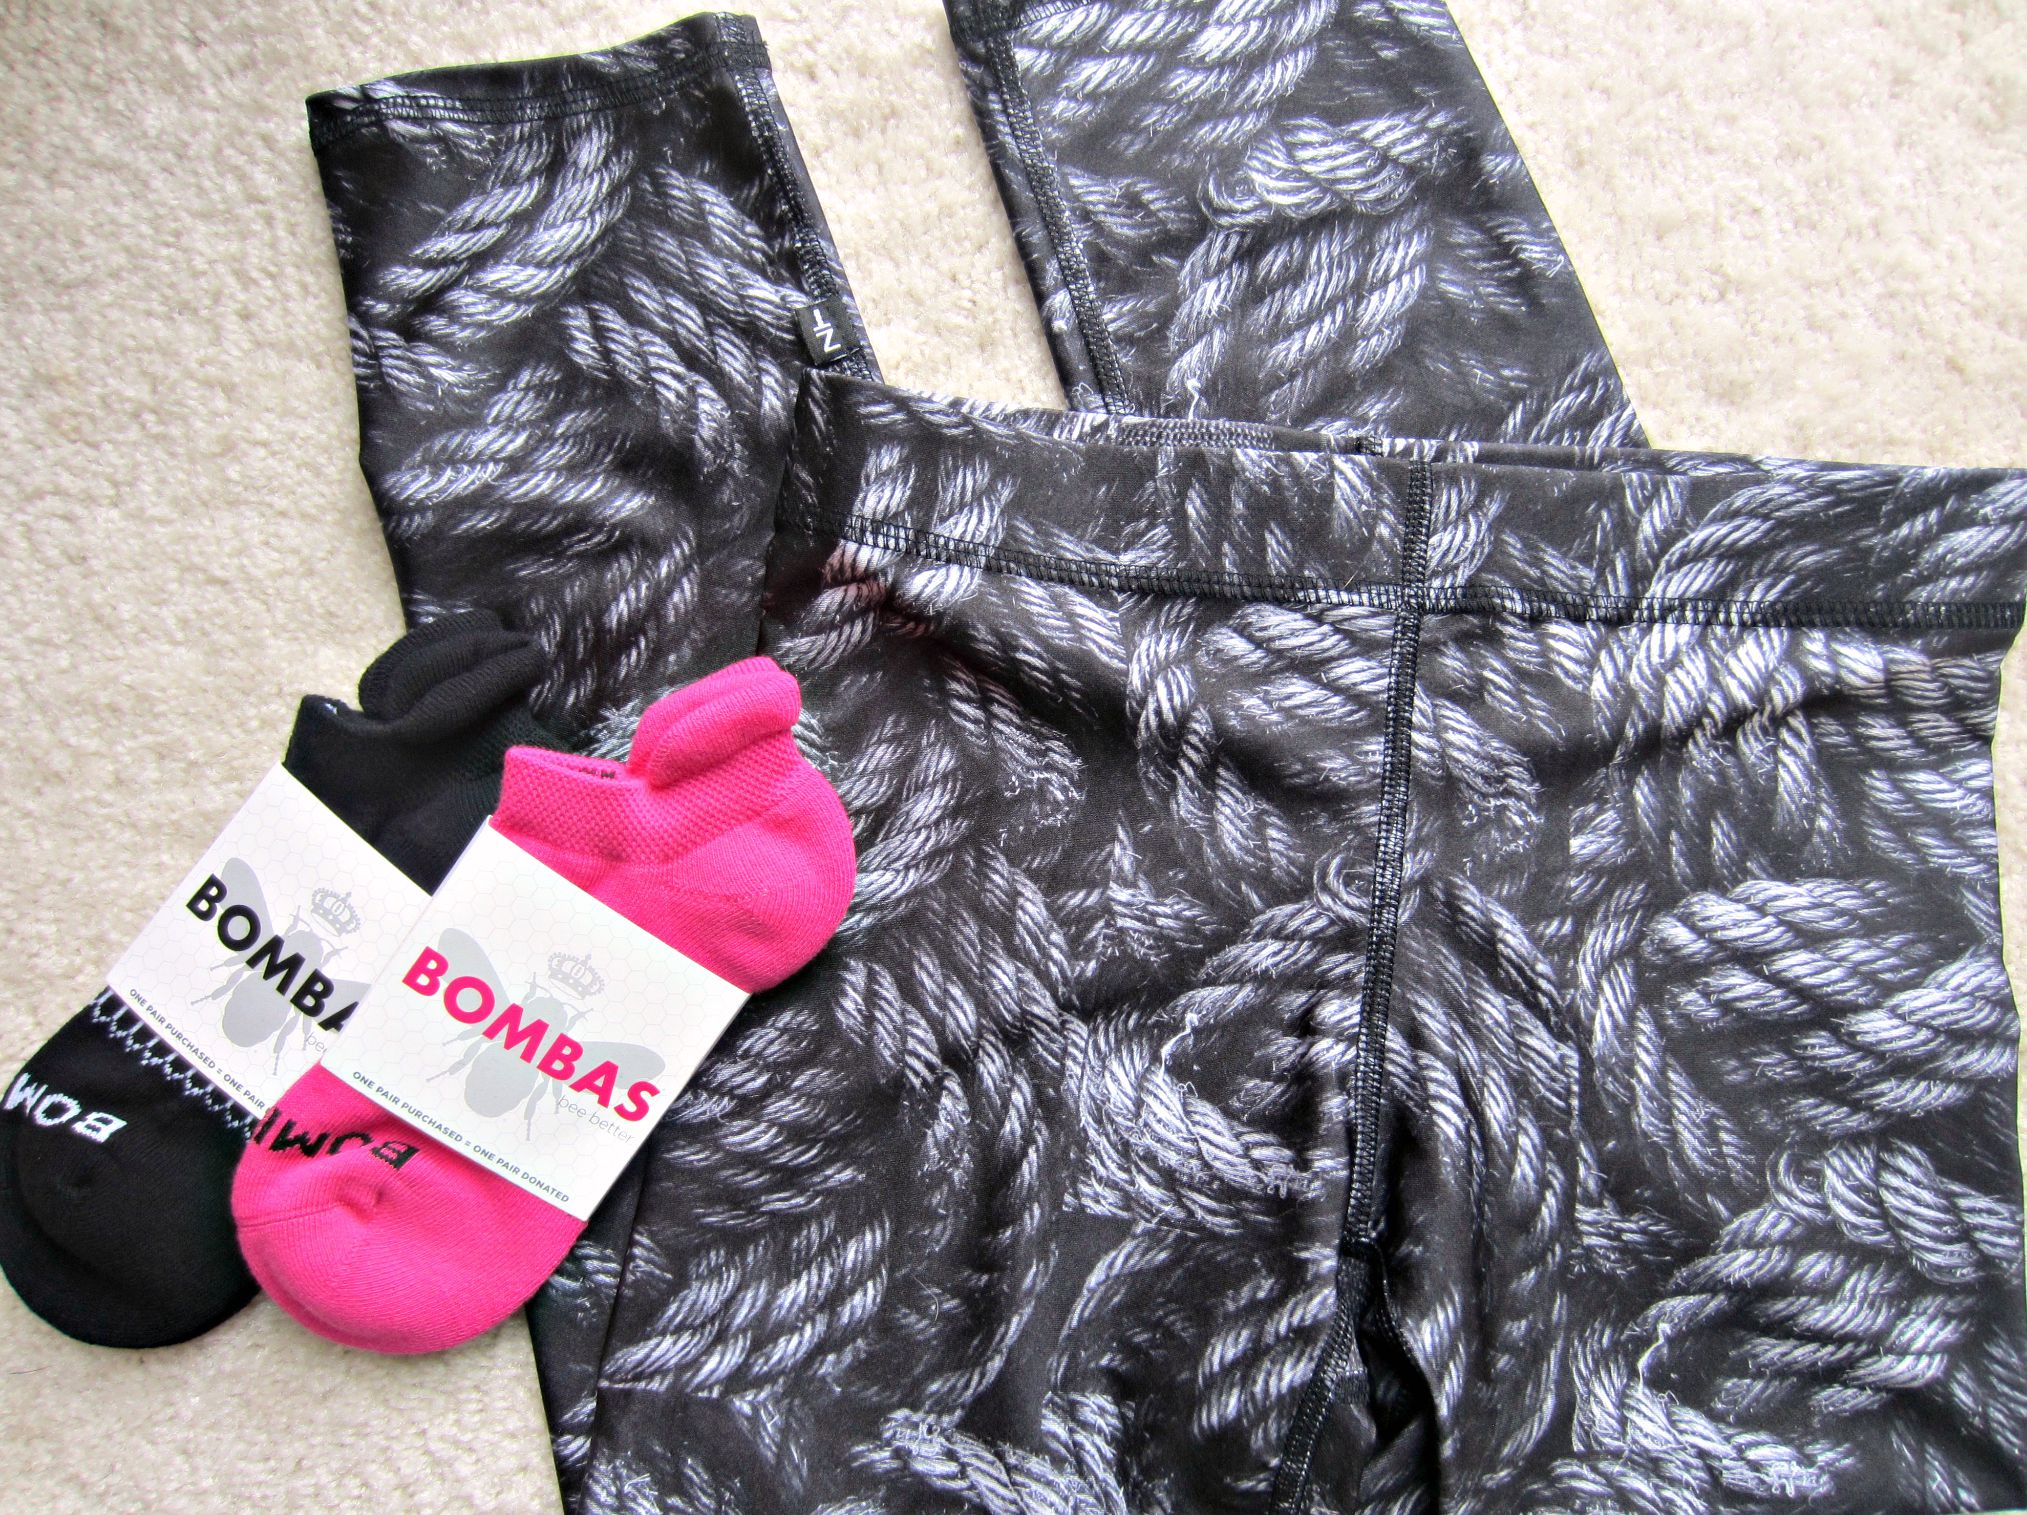 zara terez leggings and bombas socks